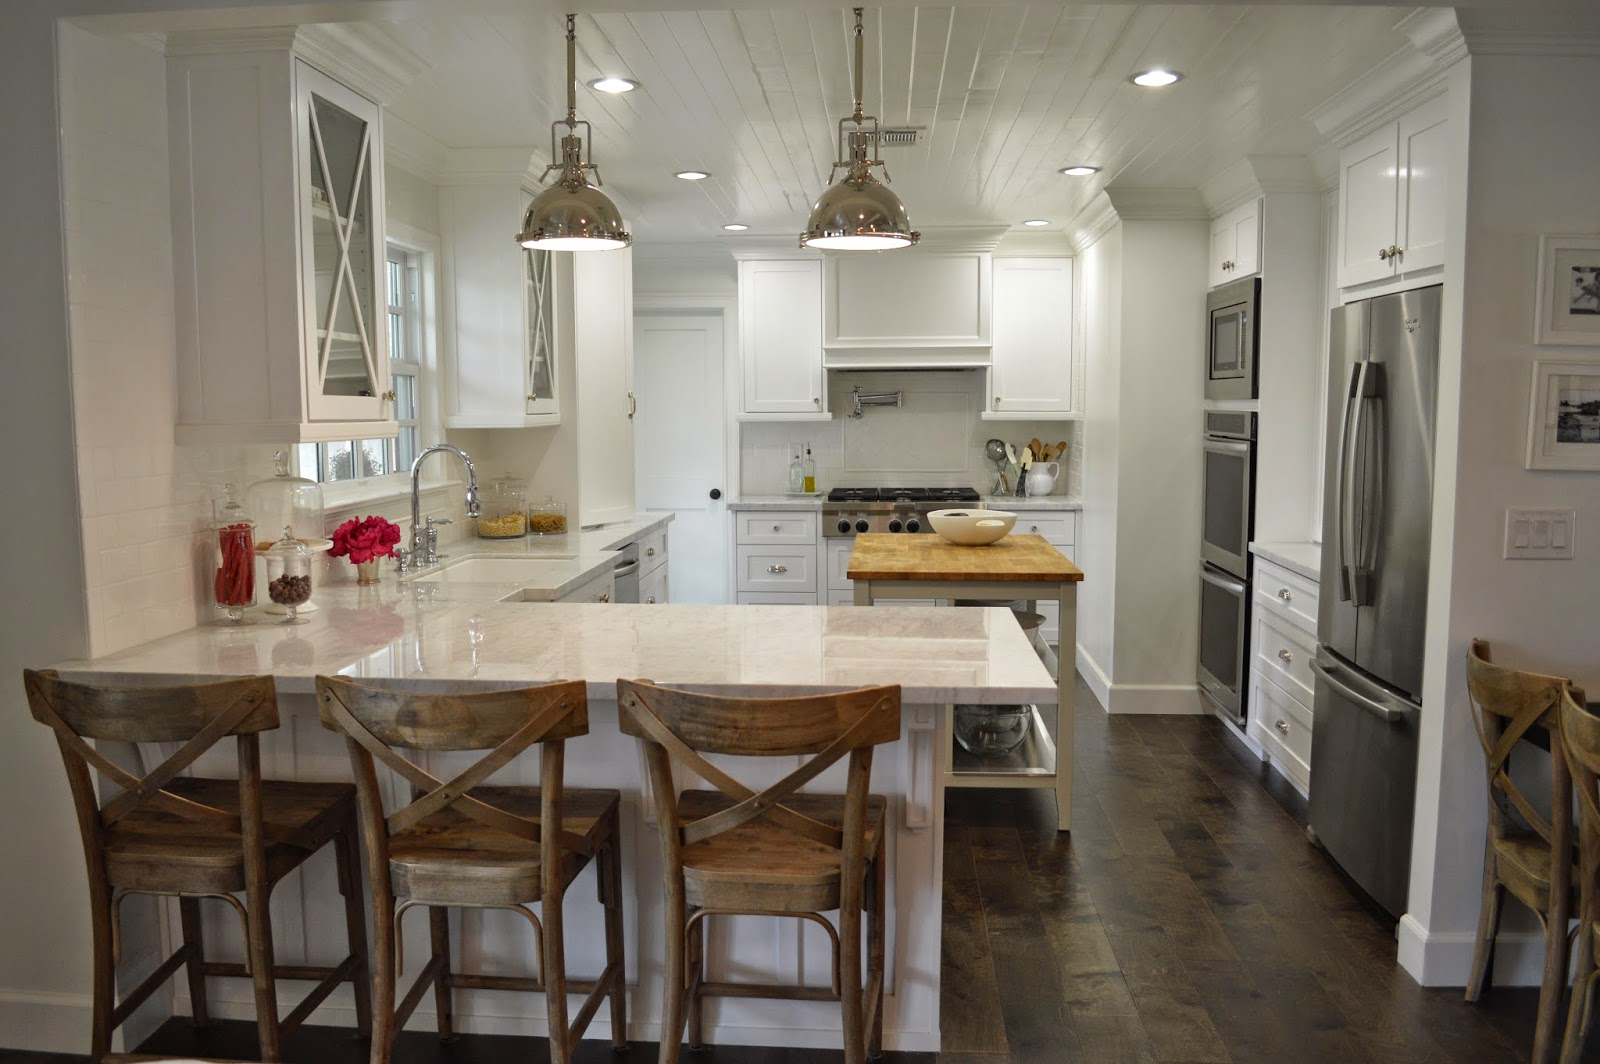 The cape cod ranch renovation great room continued kitchen for Cape cod remodel ideas